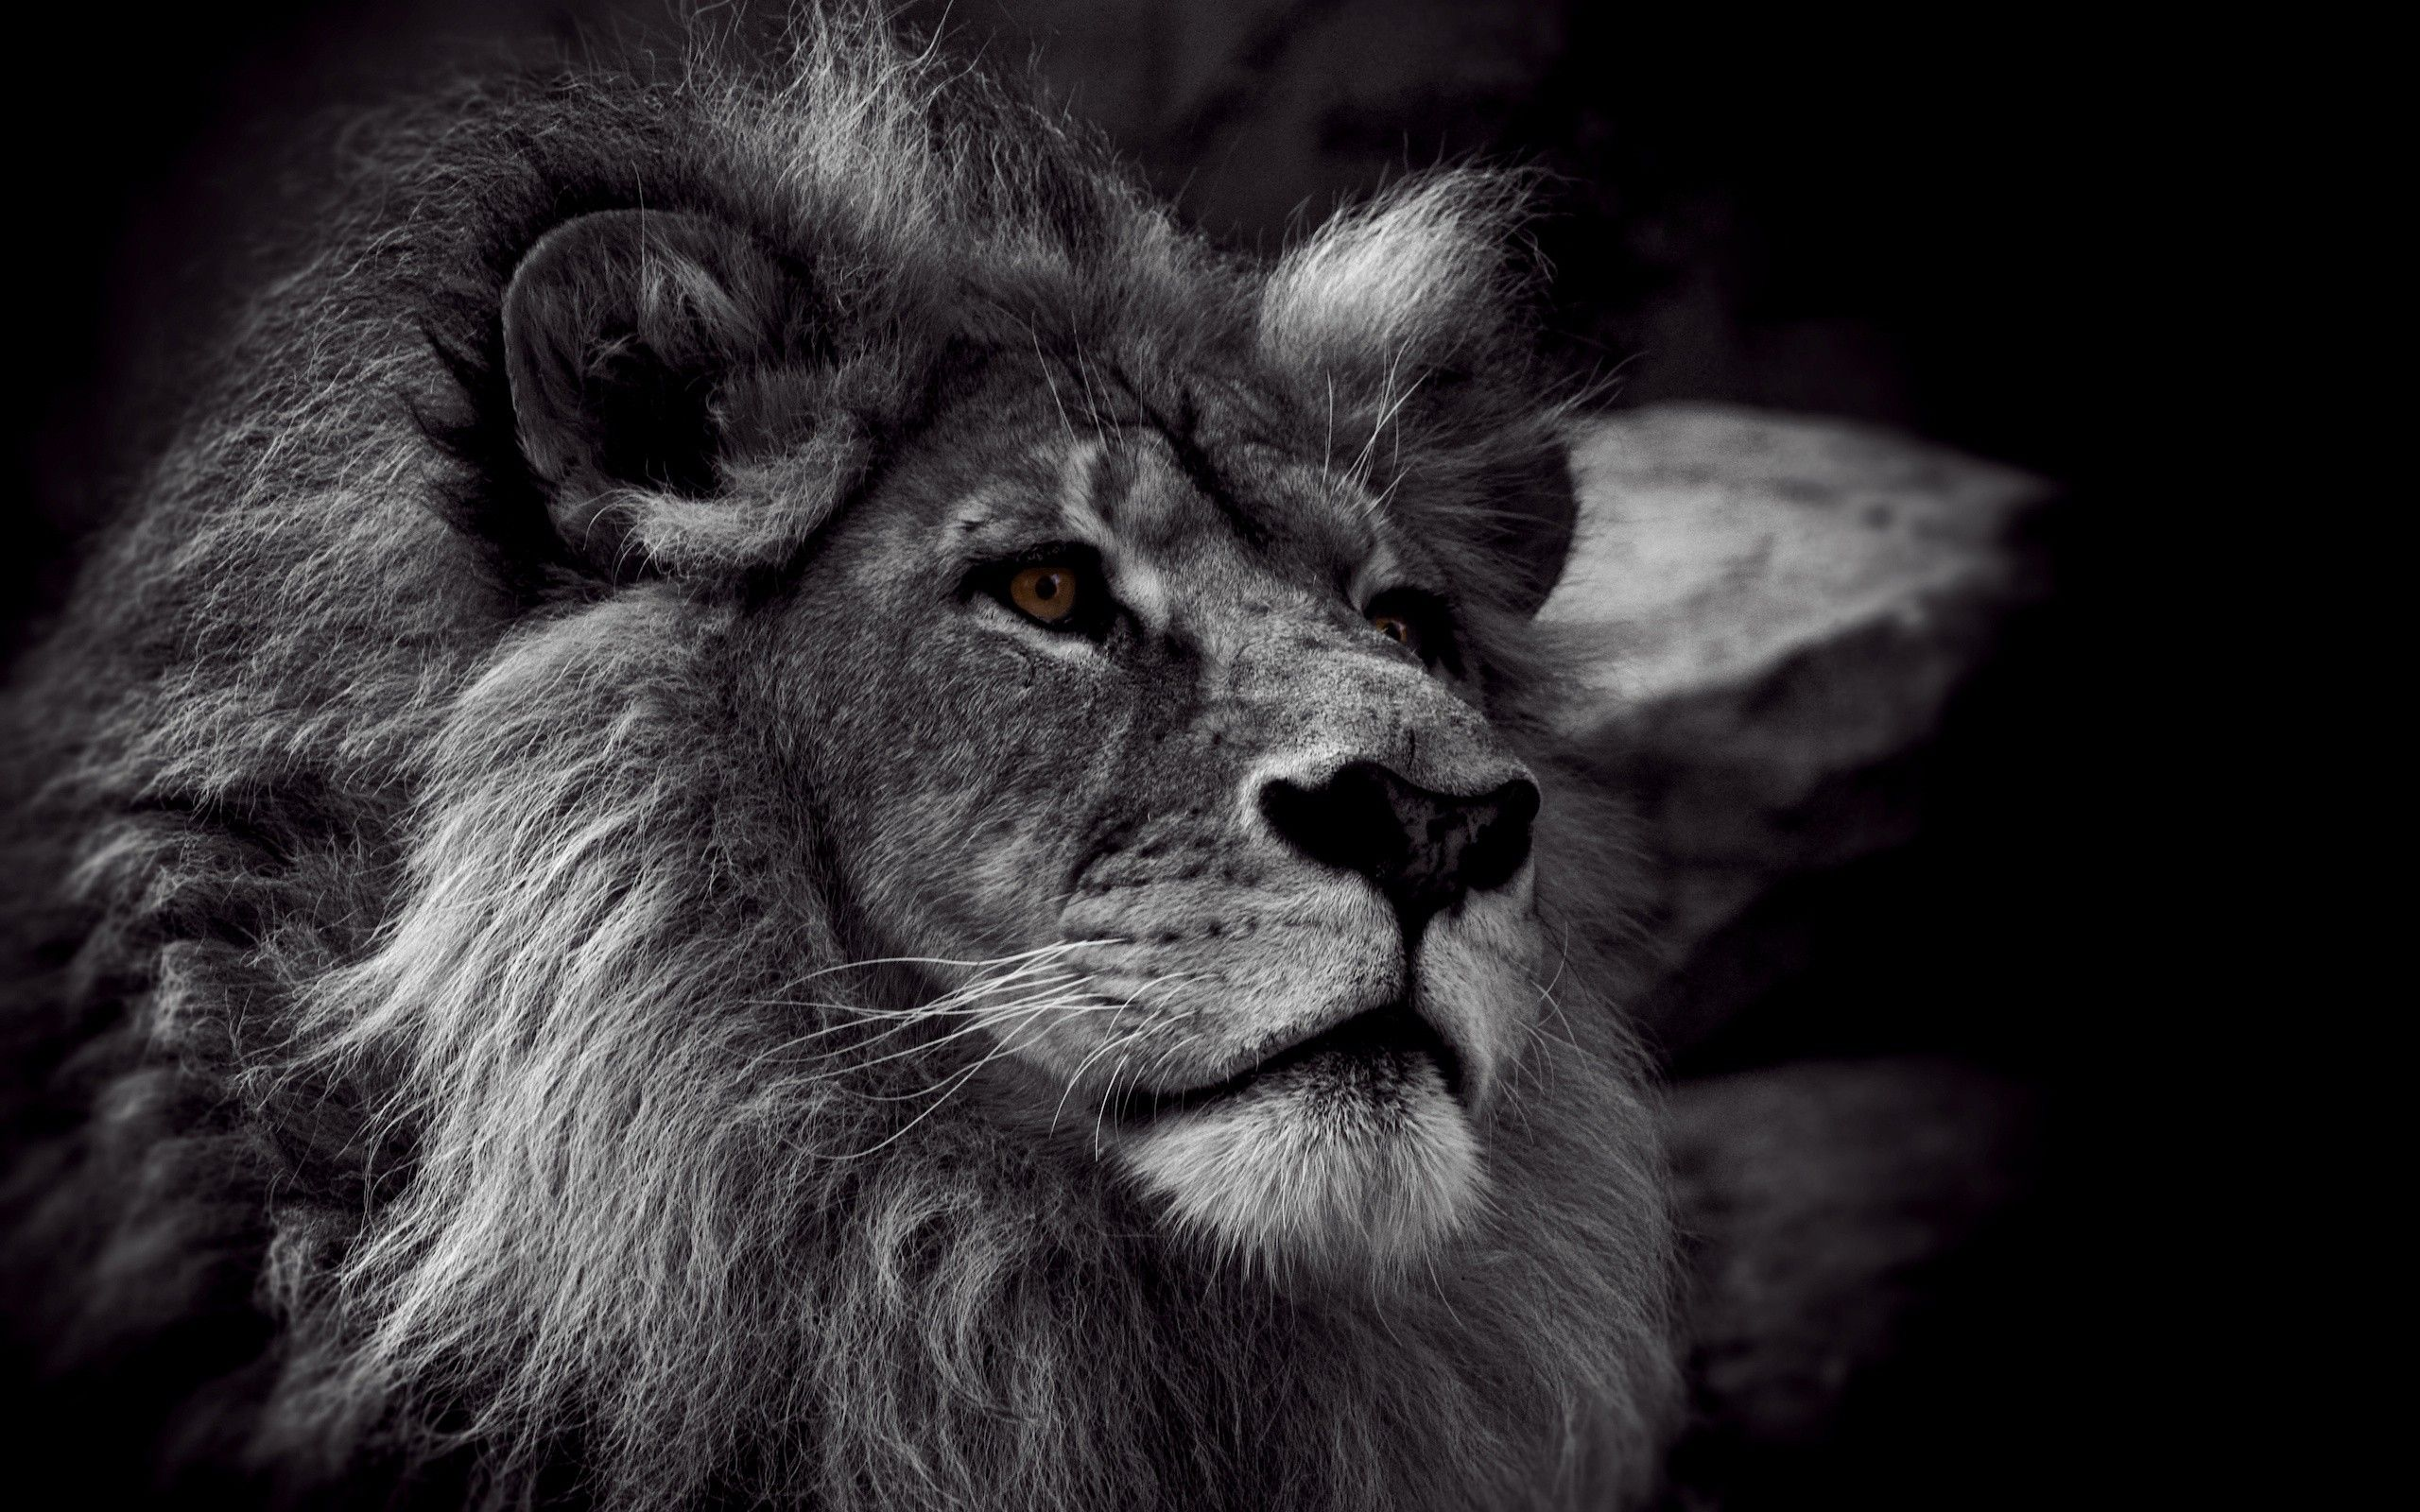 HD Wallpapers: Lion Black And